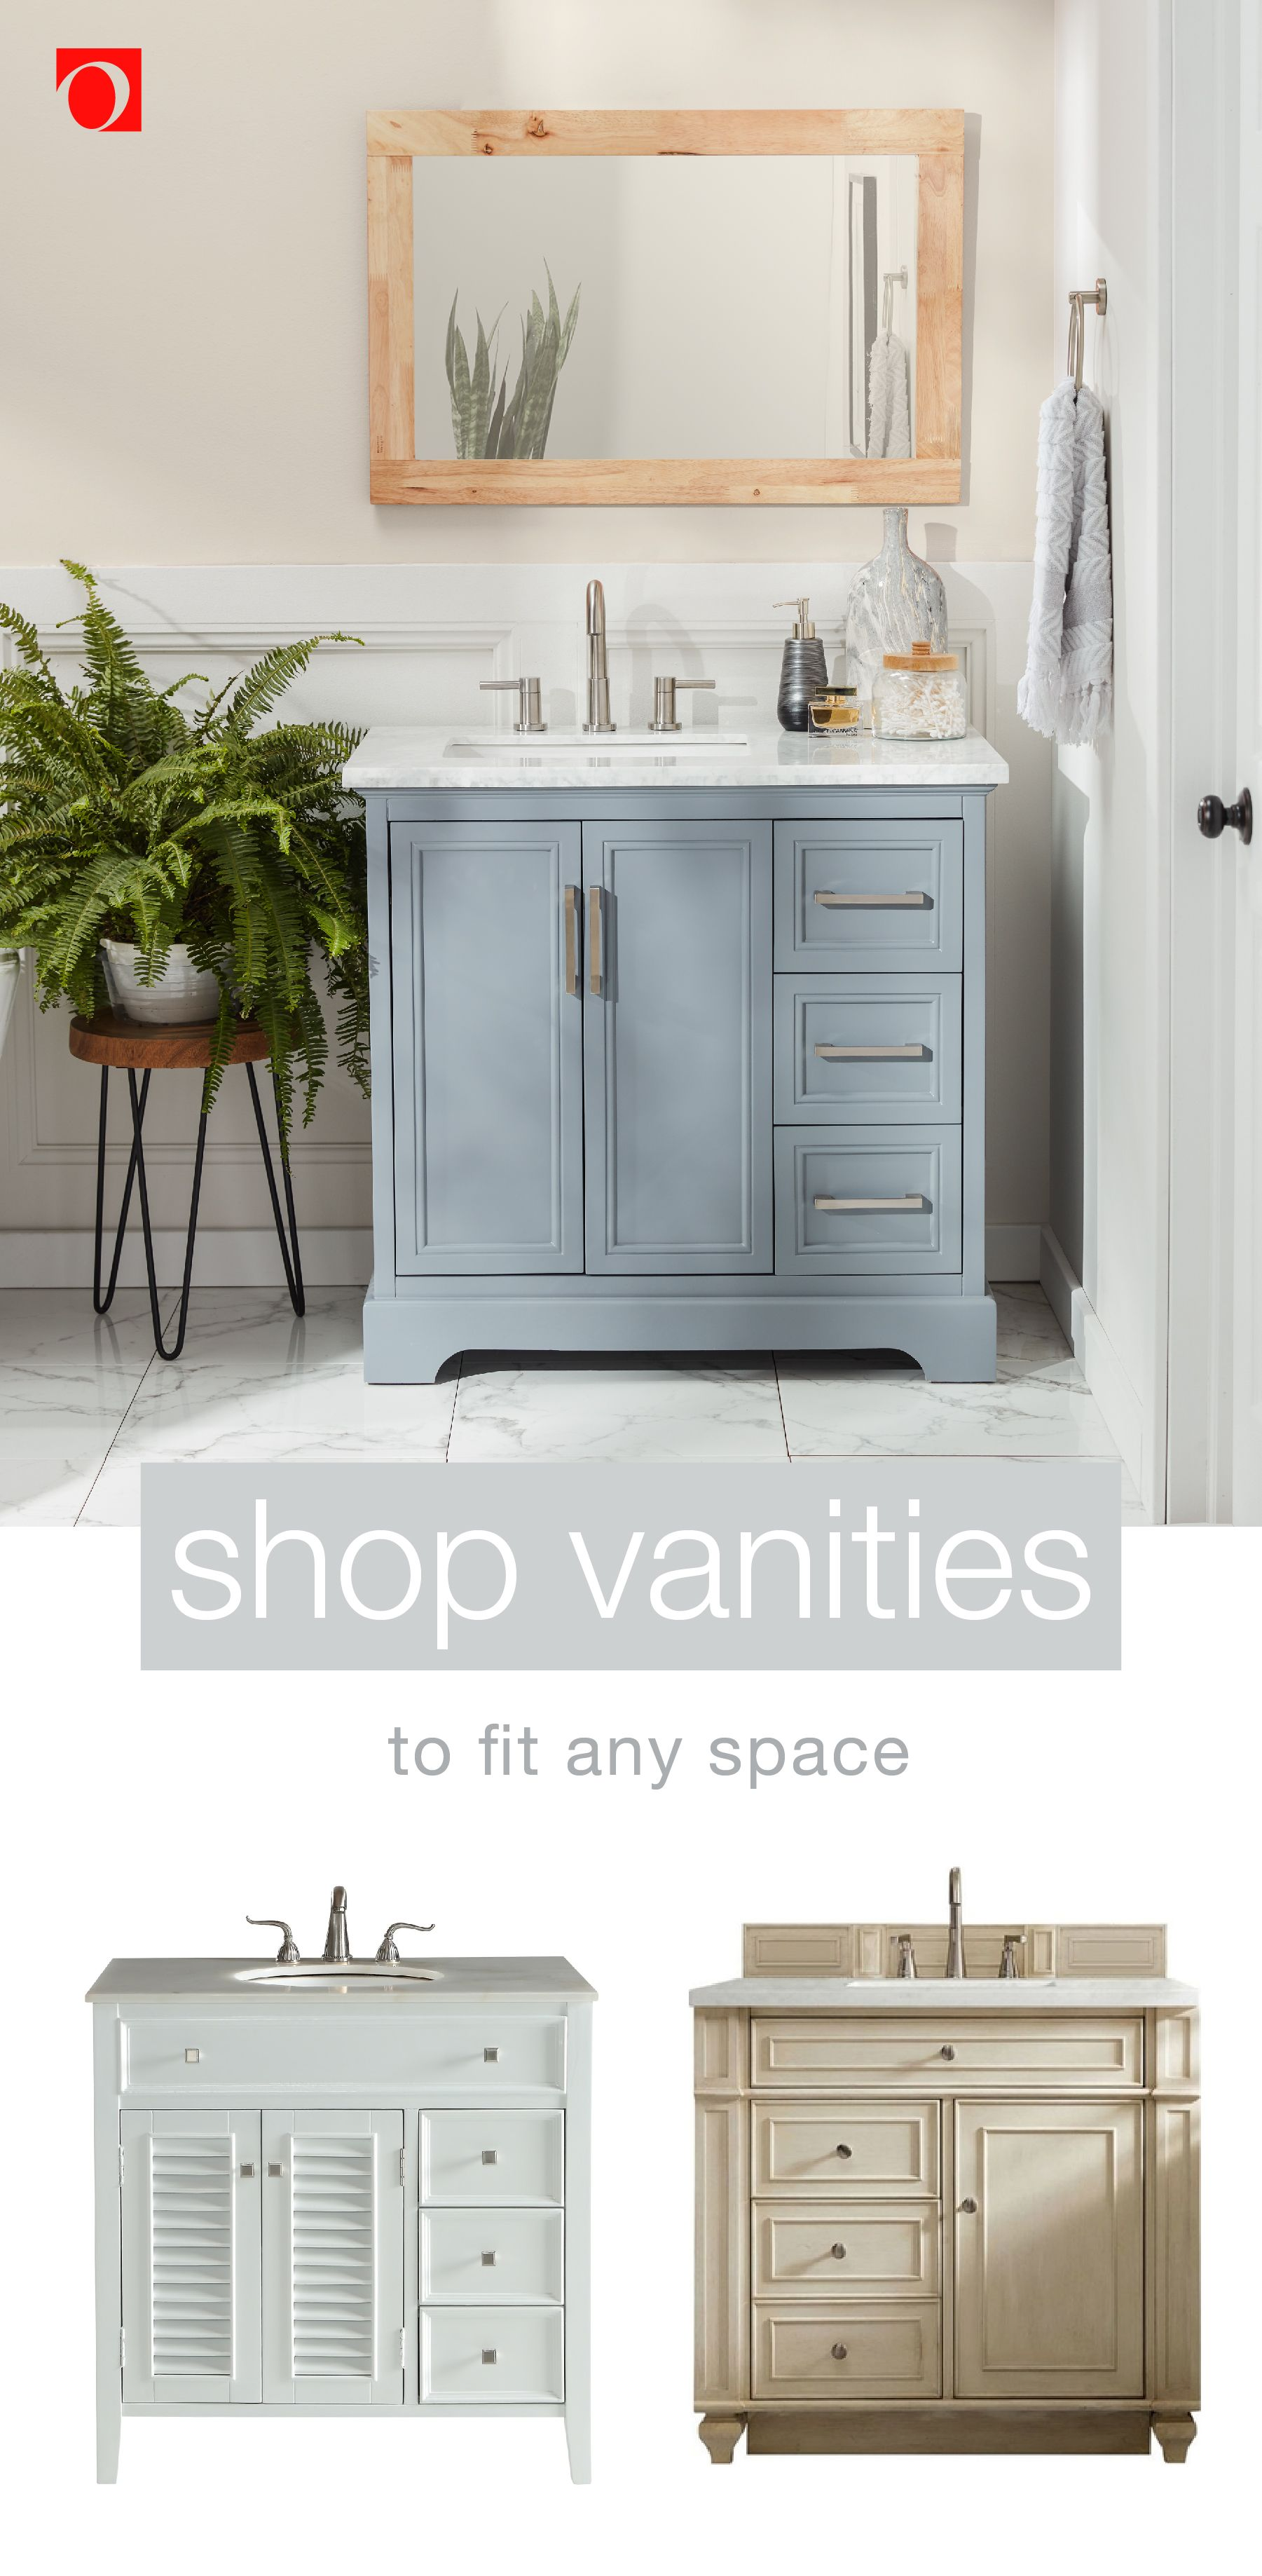 Browse An Impressive Selection Of Stylish Bathroom Furniture And Decor At Overstock We Have Thousand With Images Blue Bathroom Vanity Top Bathroom Design Stylish Bathroom